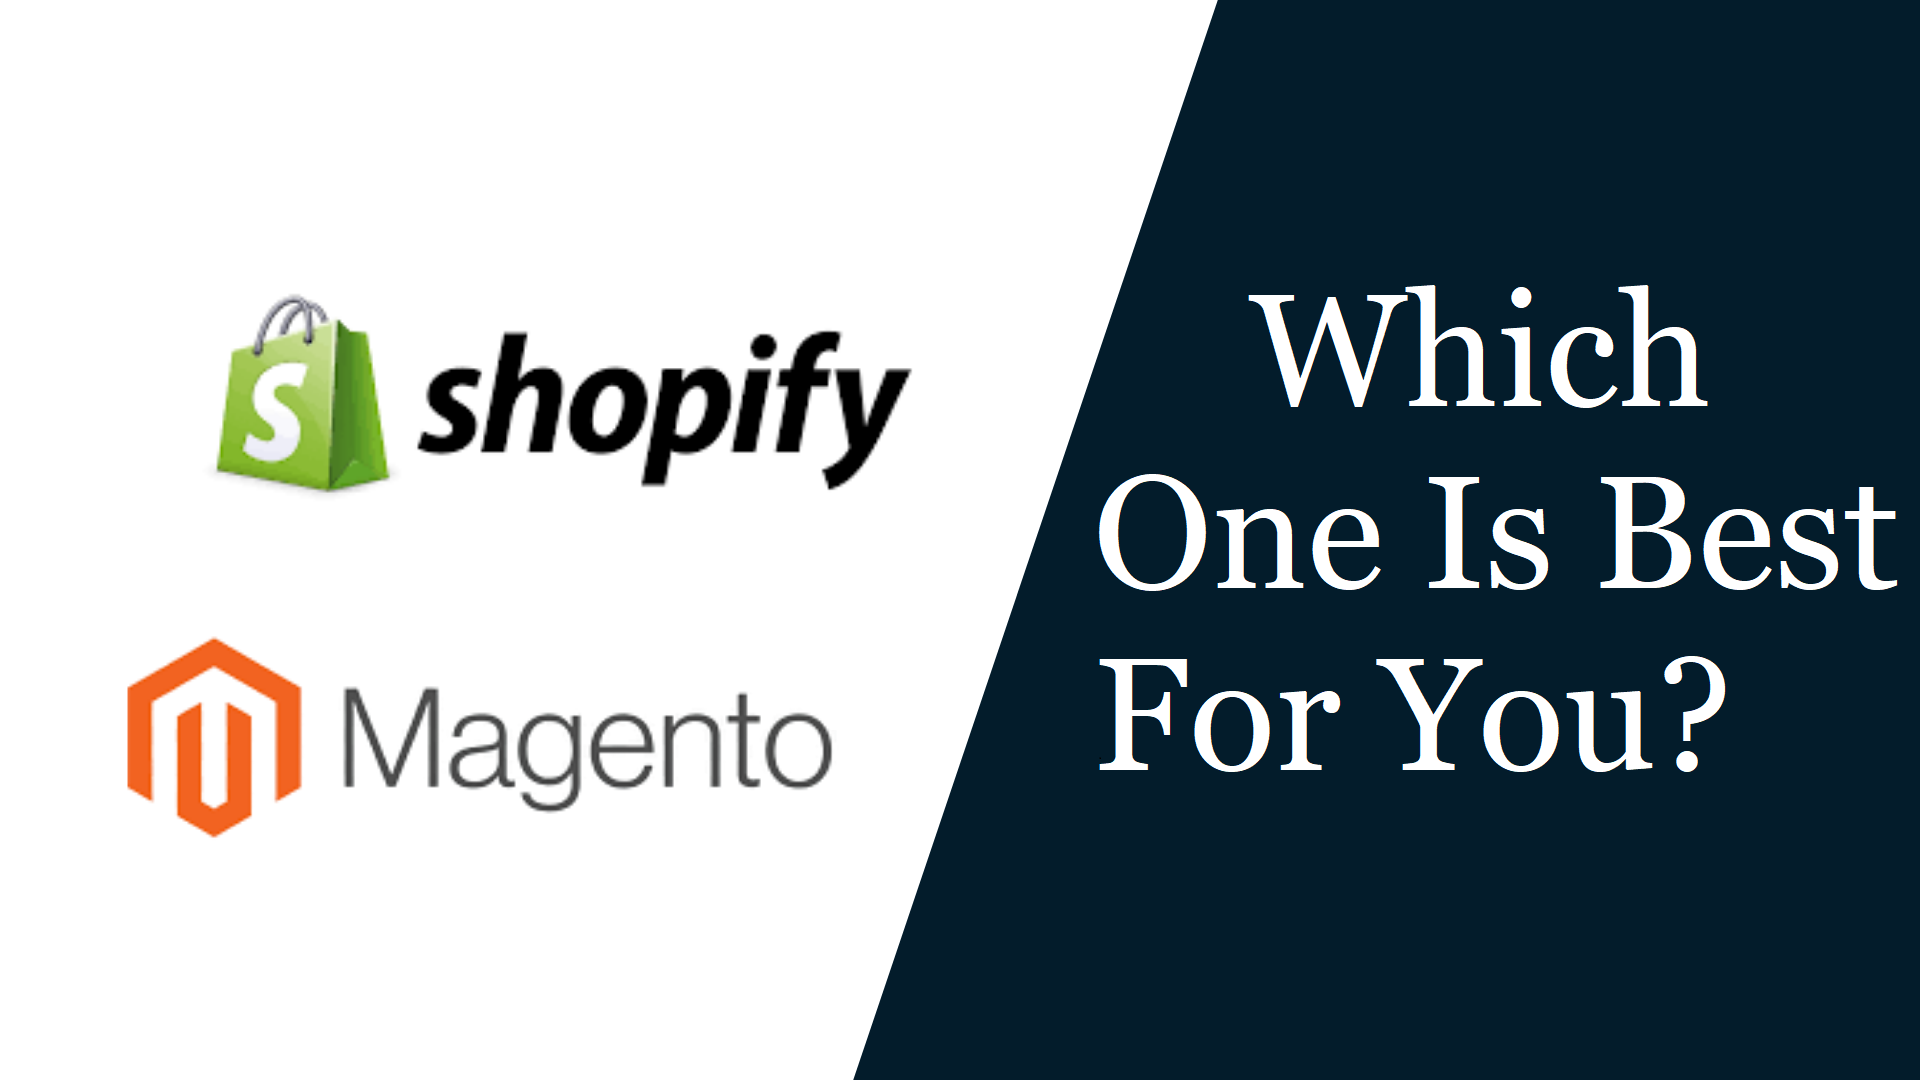 Shopify Vs Magento: - Which One is Best For You?